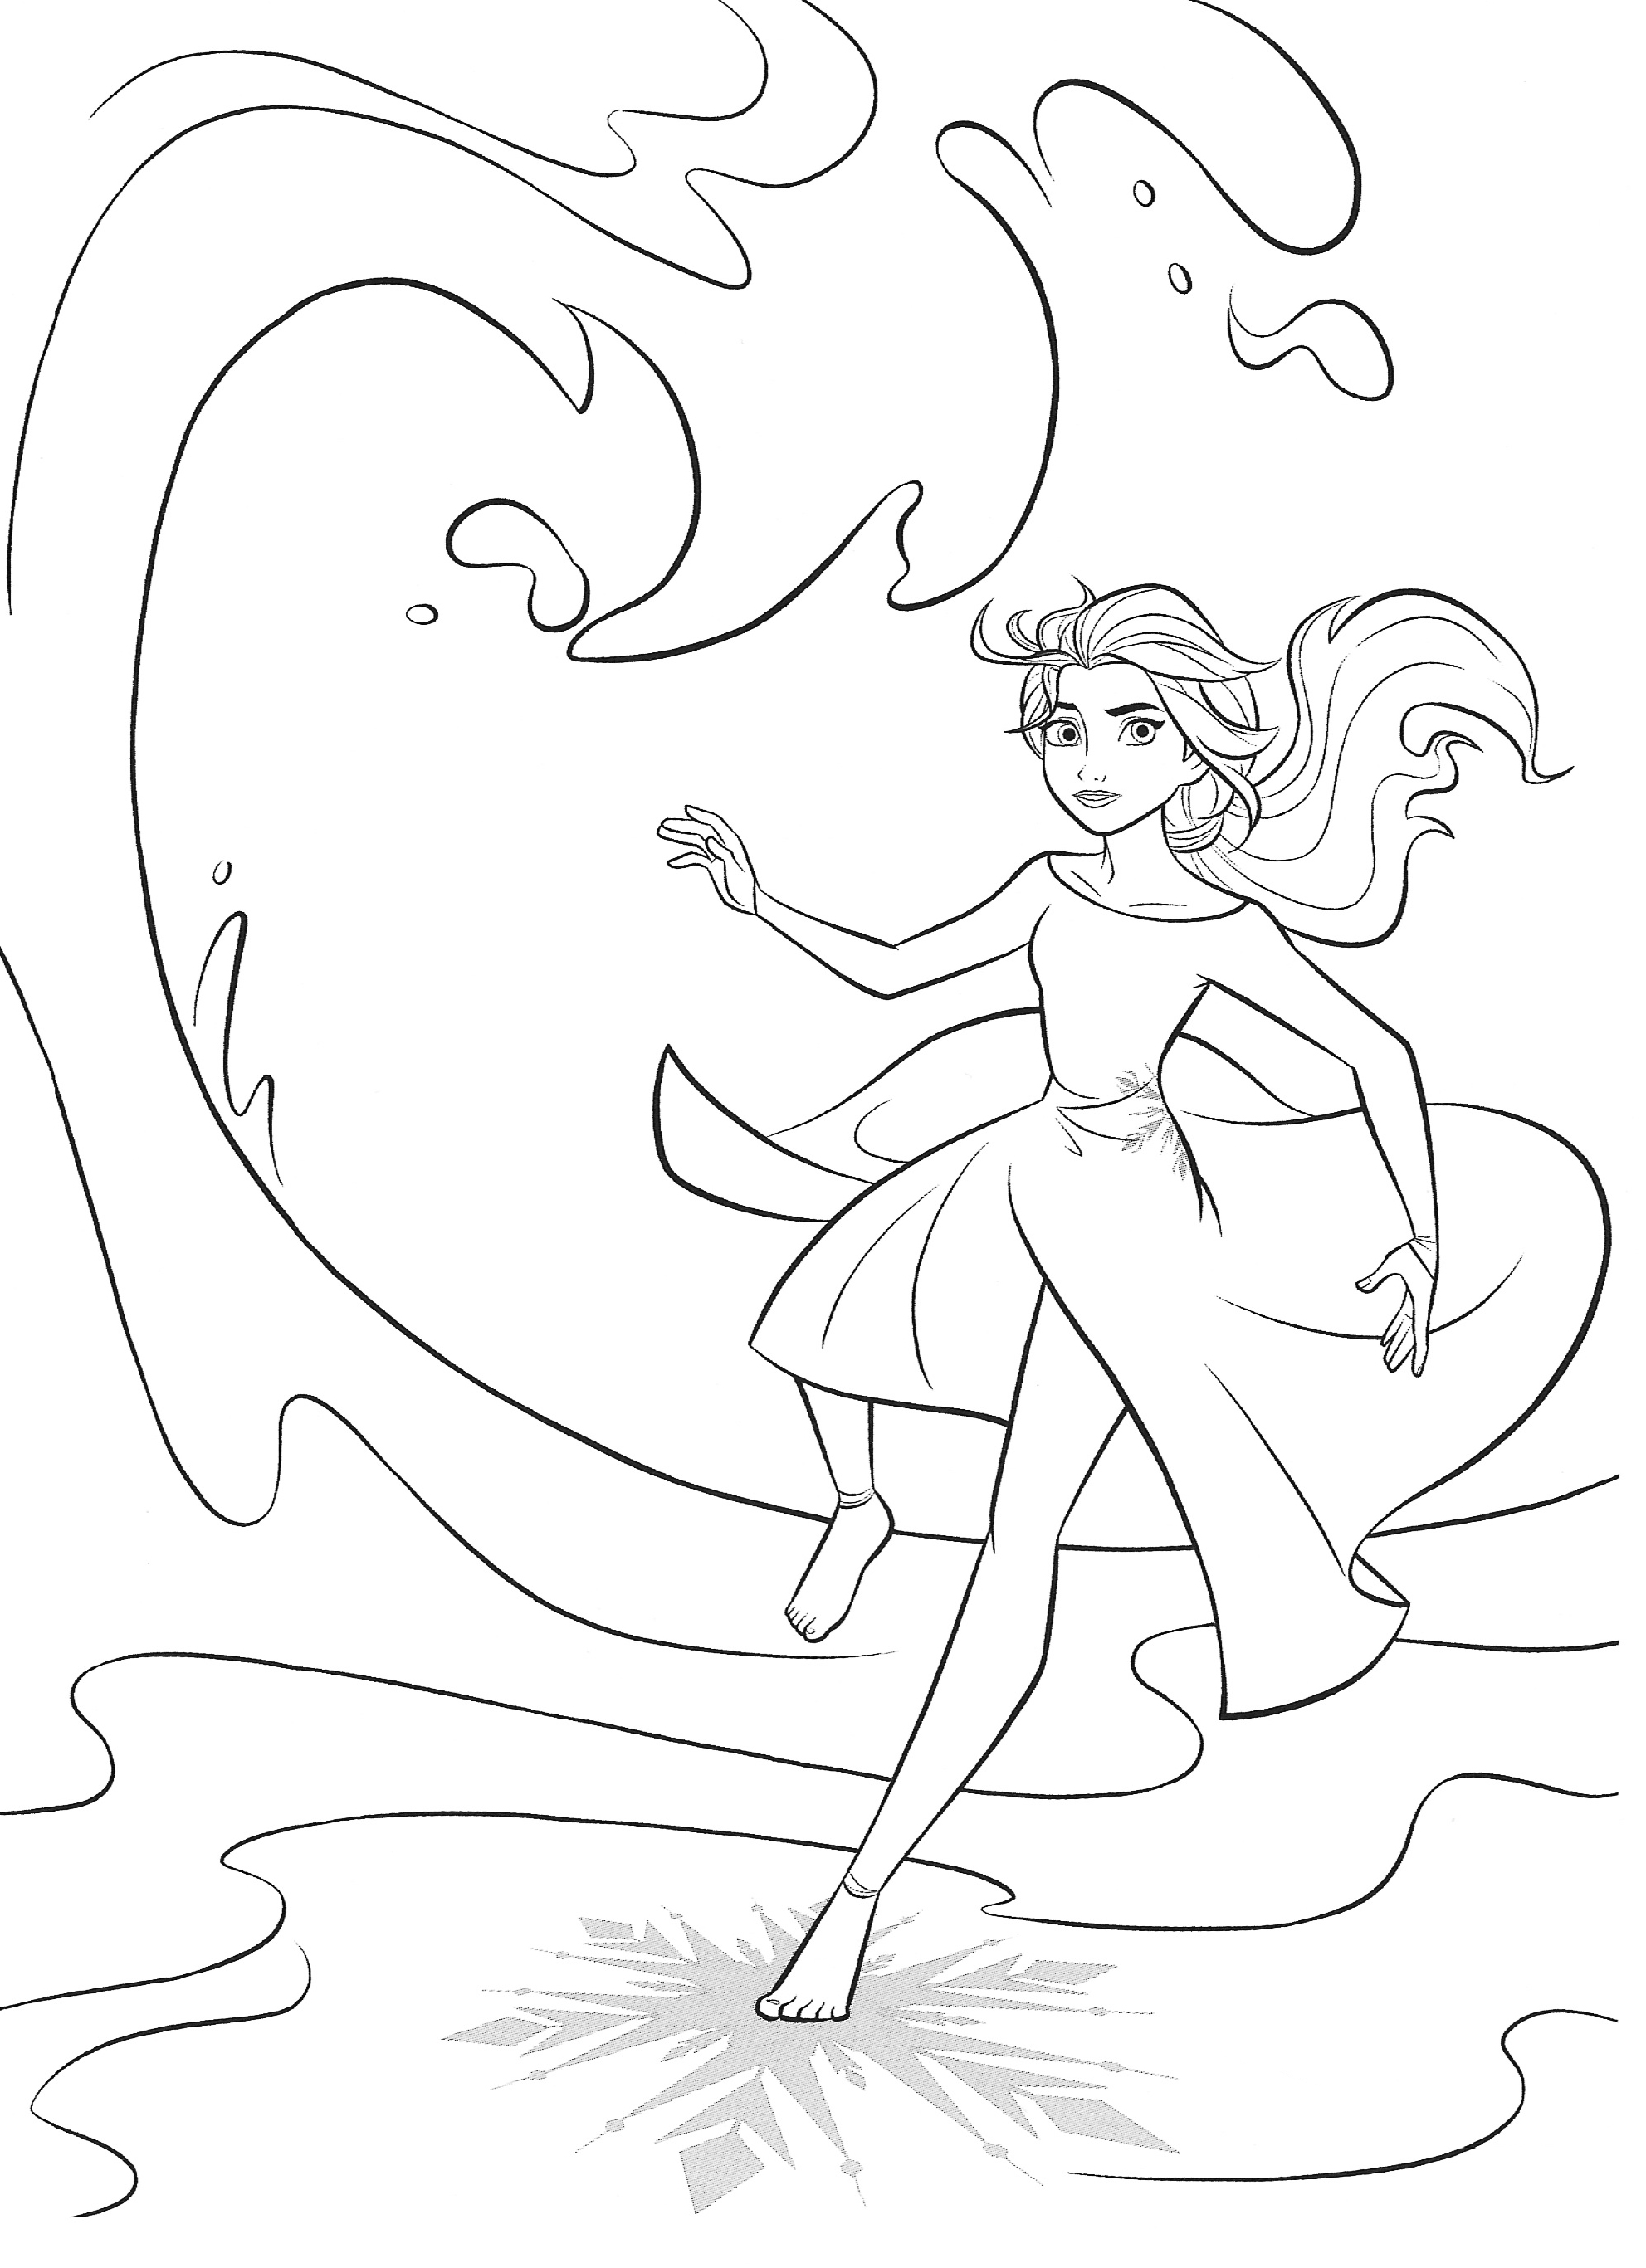 New Frozen 2 Coloring Pages With Elsa Youloveit Com